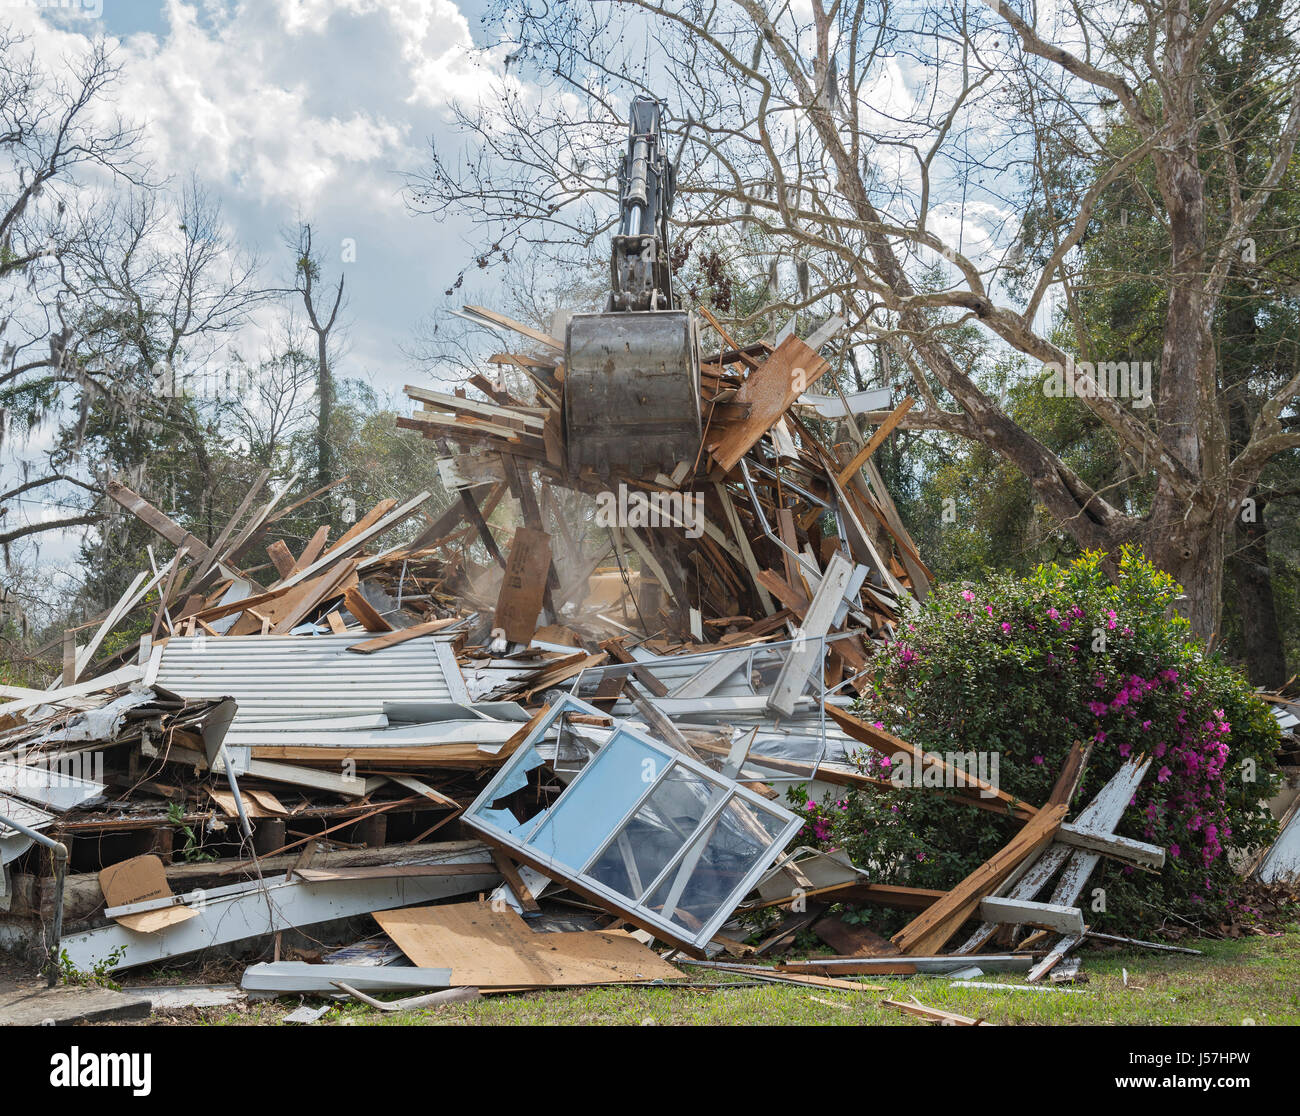 Old church being demolished in North Florida small town. - Stock Image